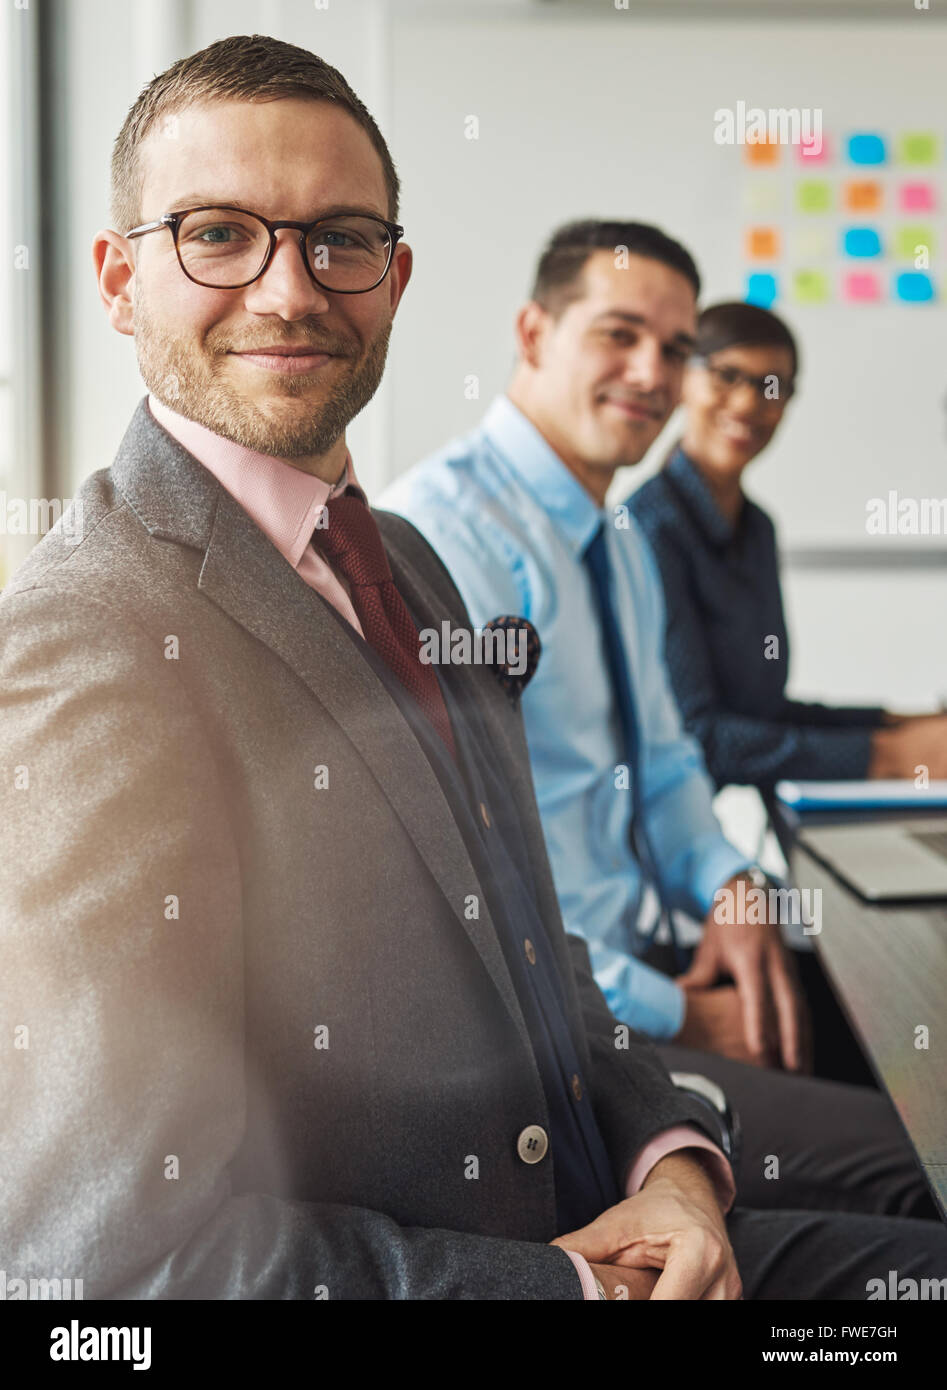 Handsome bearded man wearing suit and tie with two management colleagues in meeting at conference table in front - Stock Image